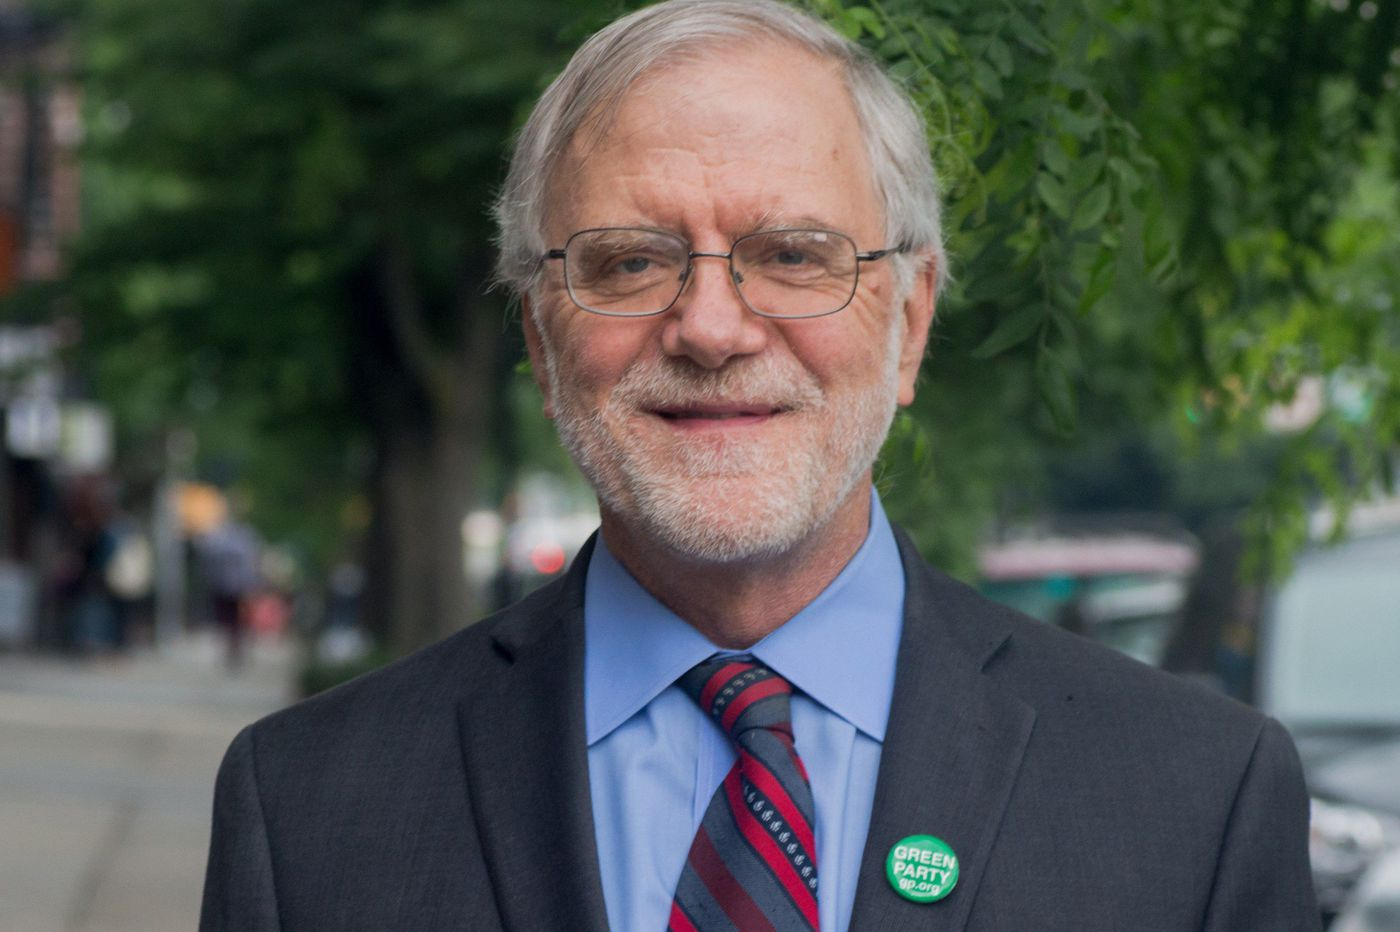 The Green Party's presidential candidate is off the ballot in a big win for Pennsylvania Democrats